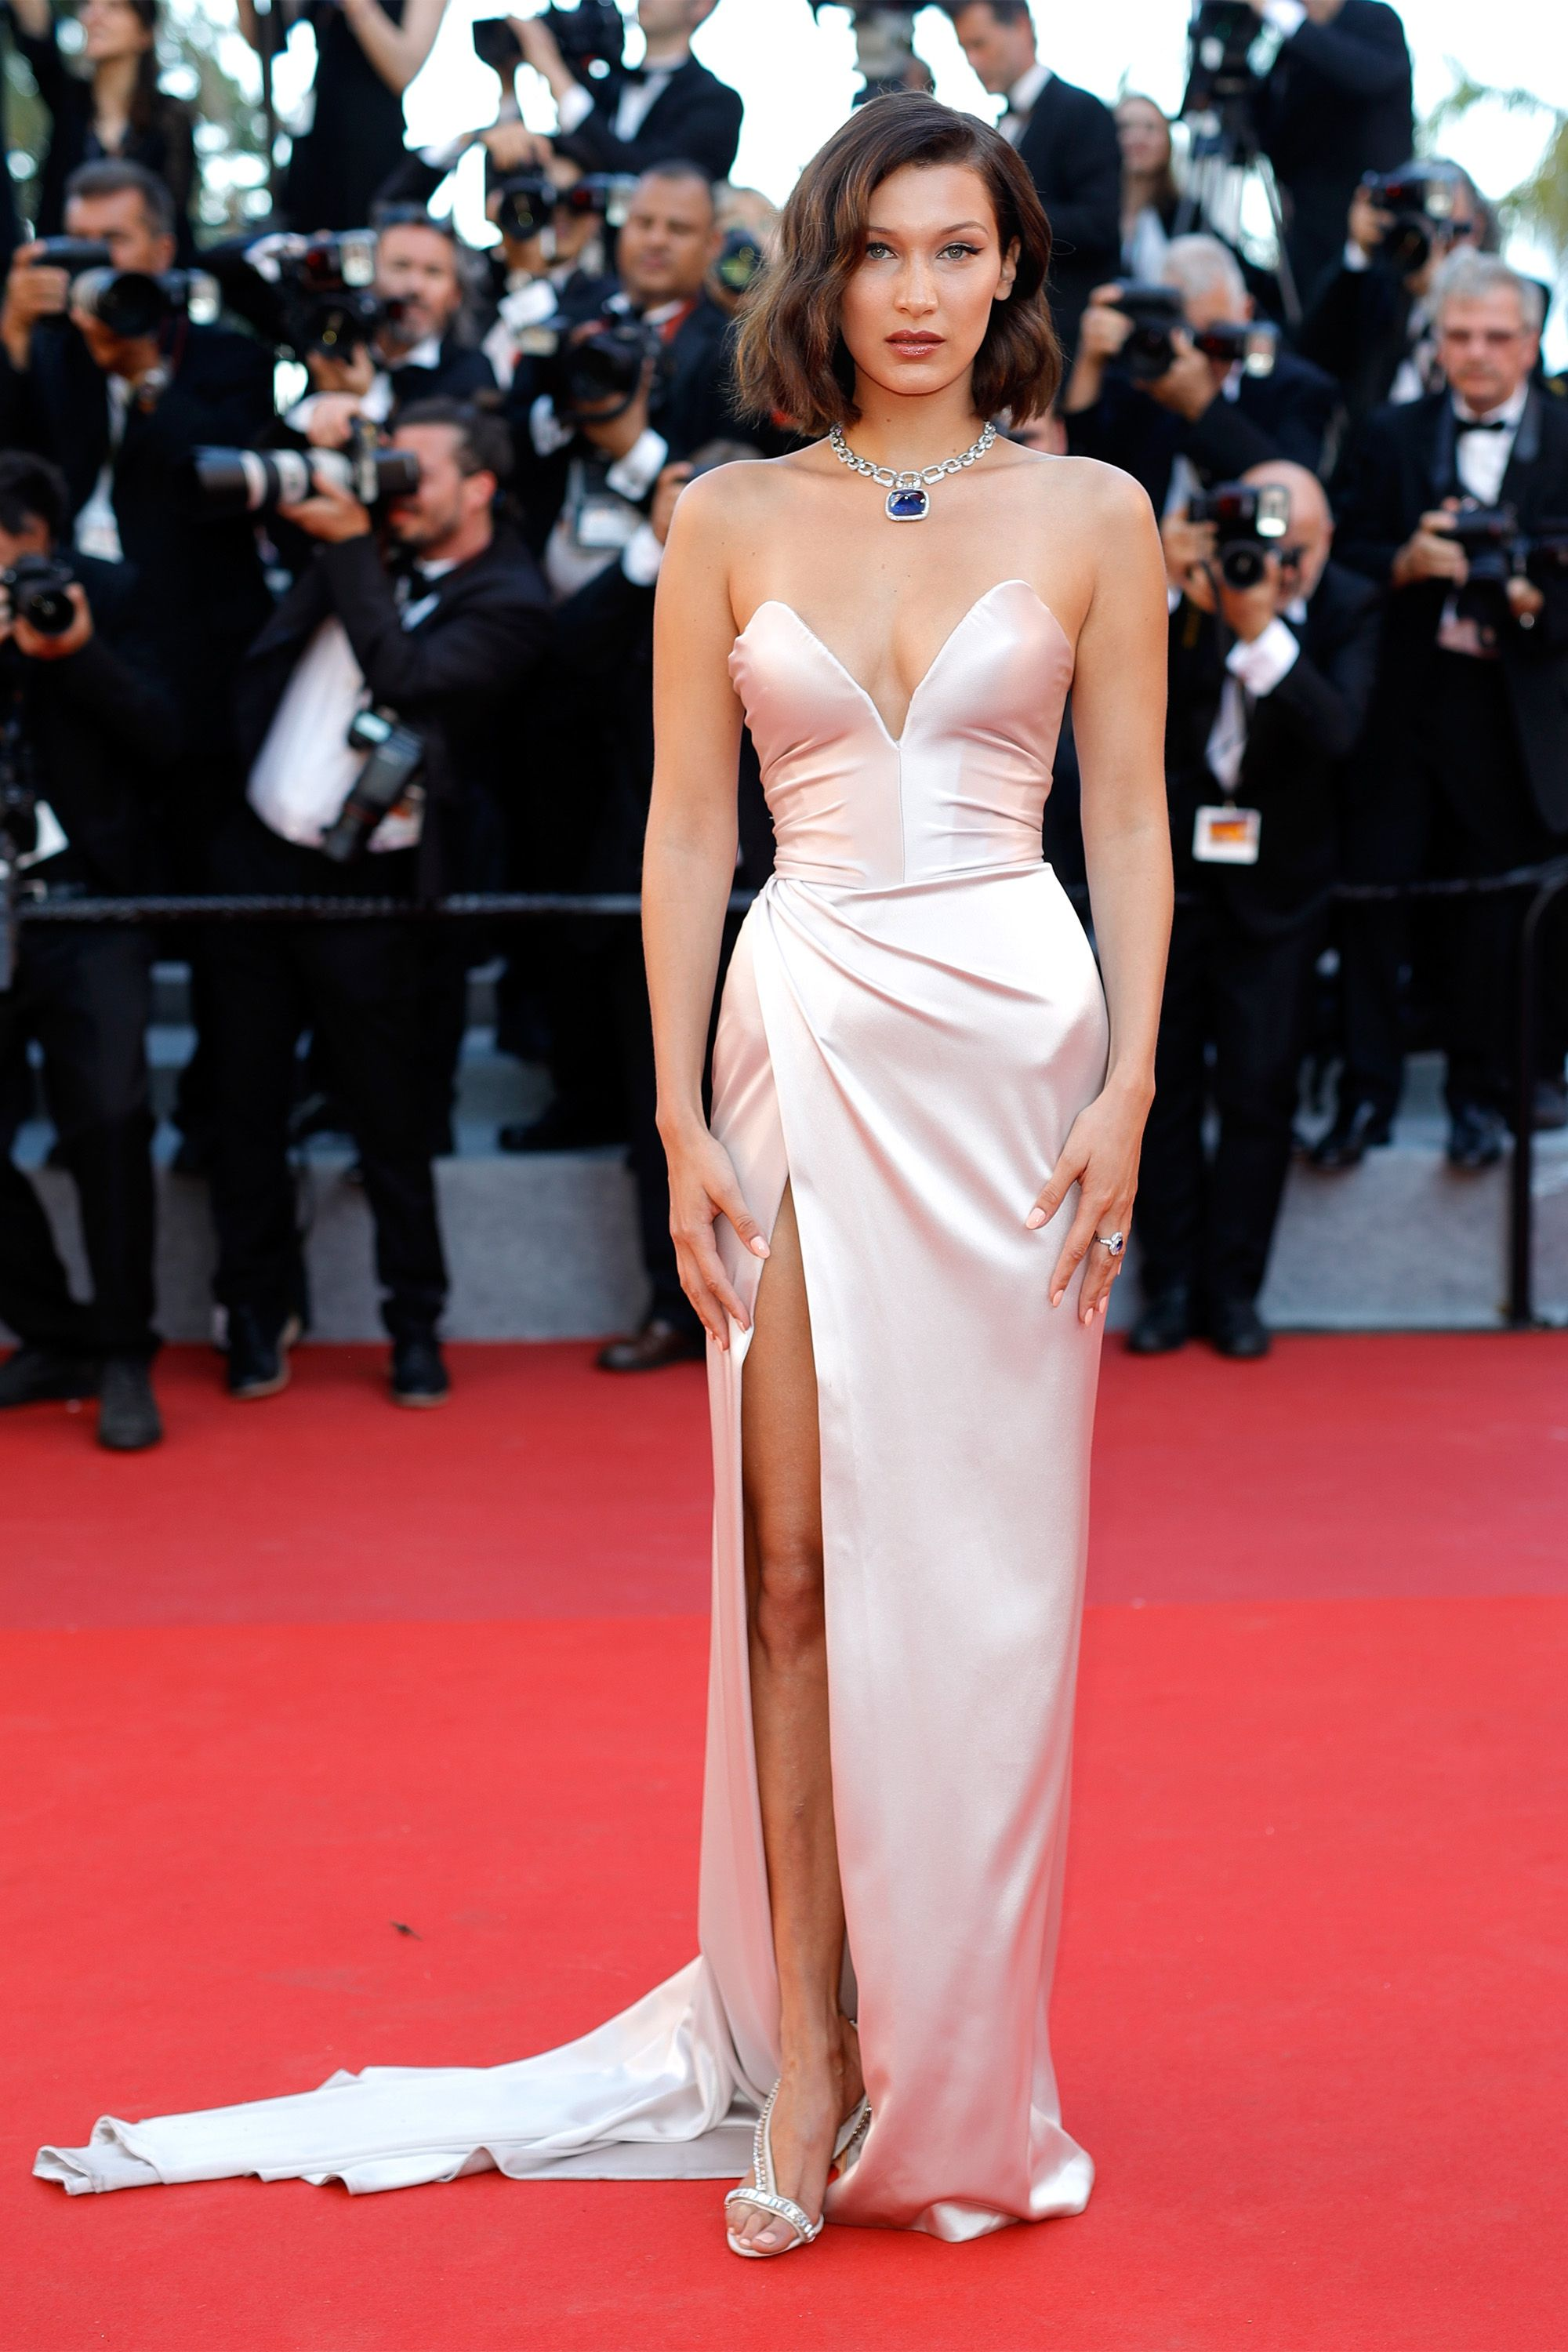 Roter Teppich Hollywood Kleider Image Result For Bella Hadid Bulgaria White Dress Party